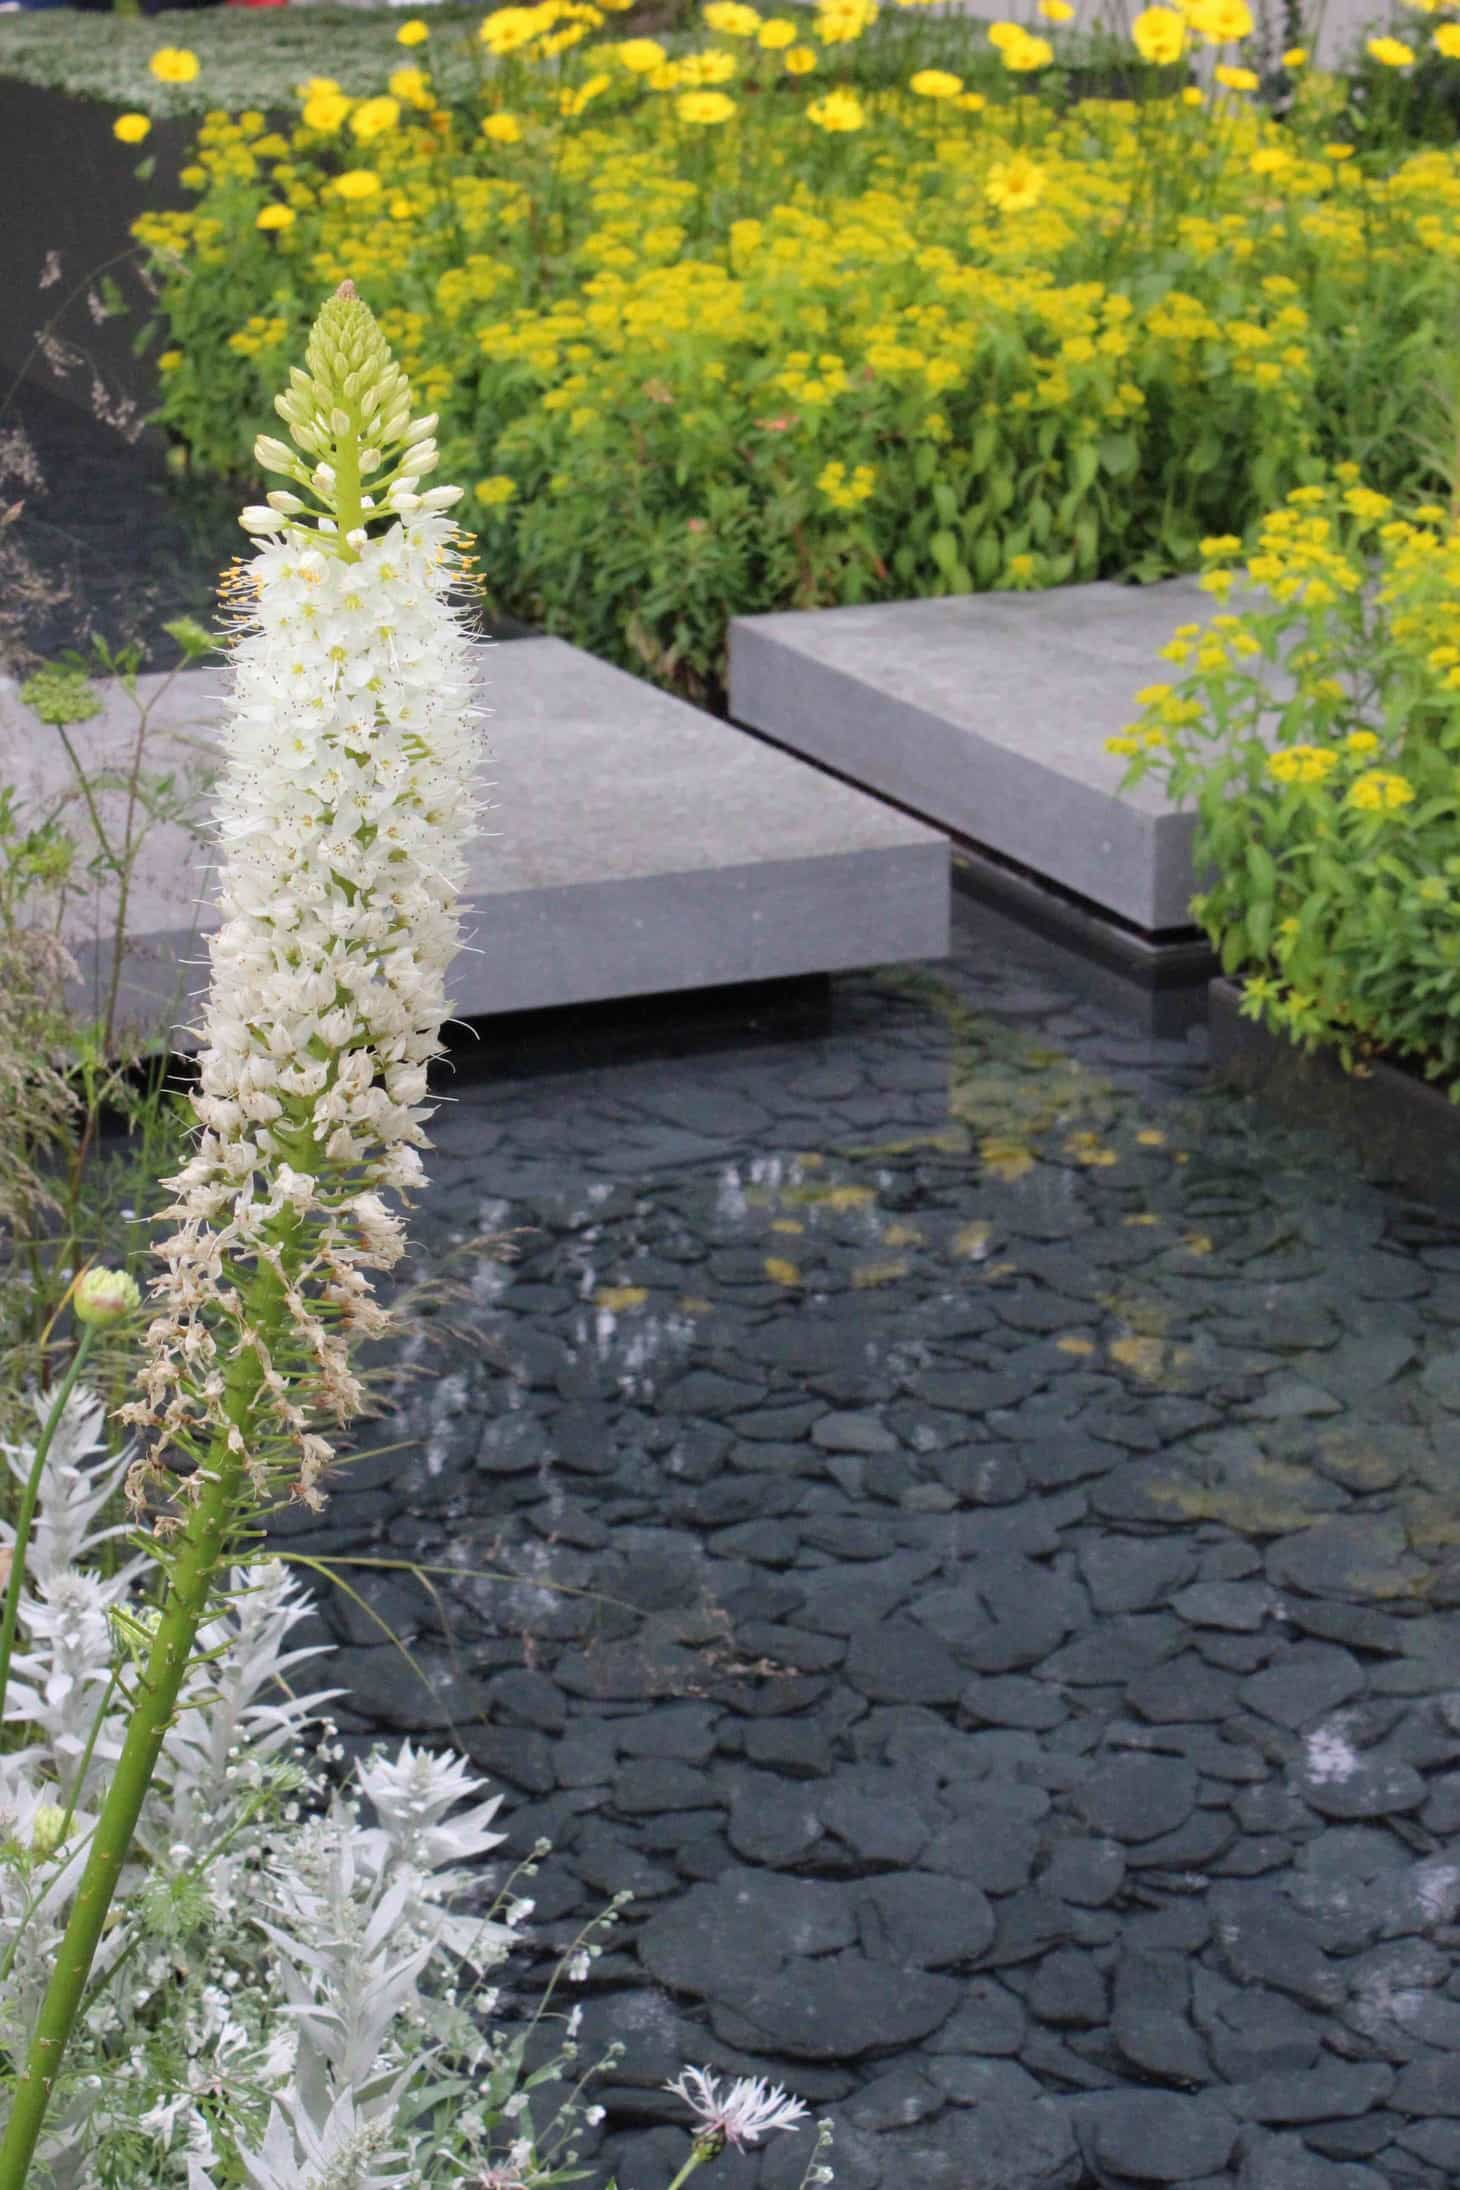 chelsea flower show 2015, last years flower show